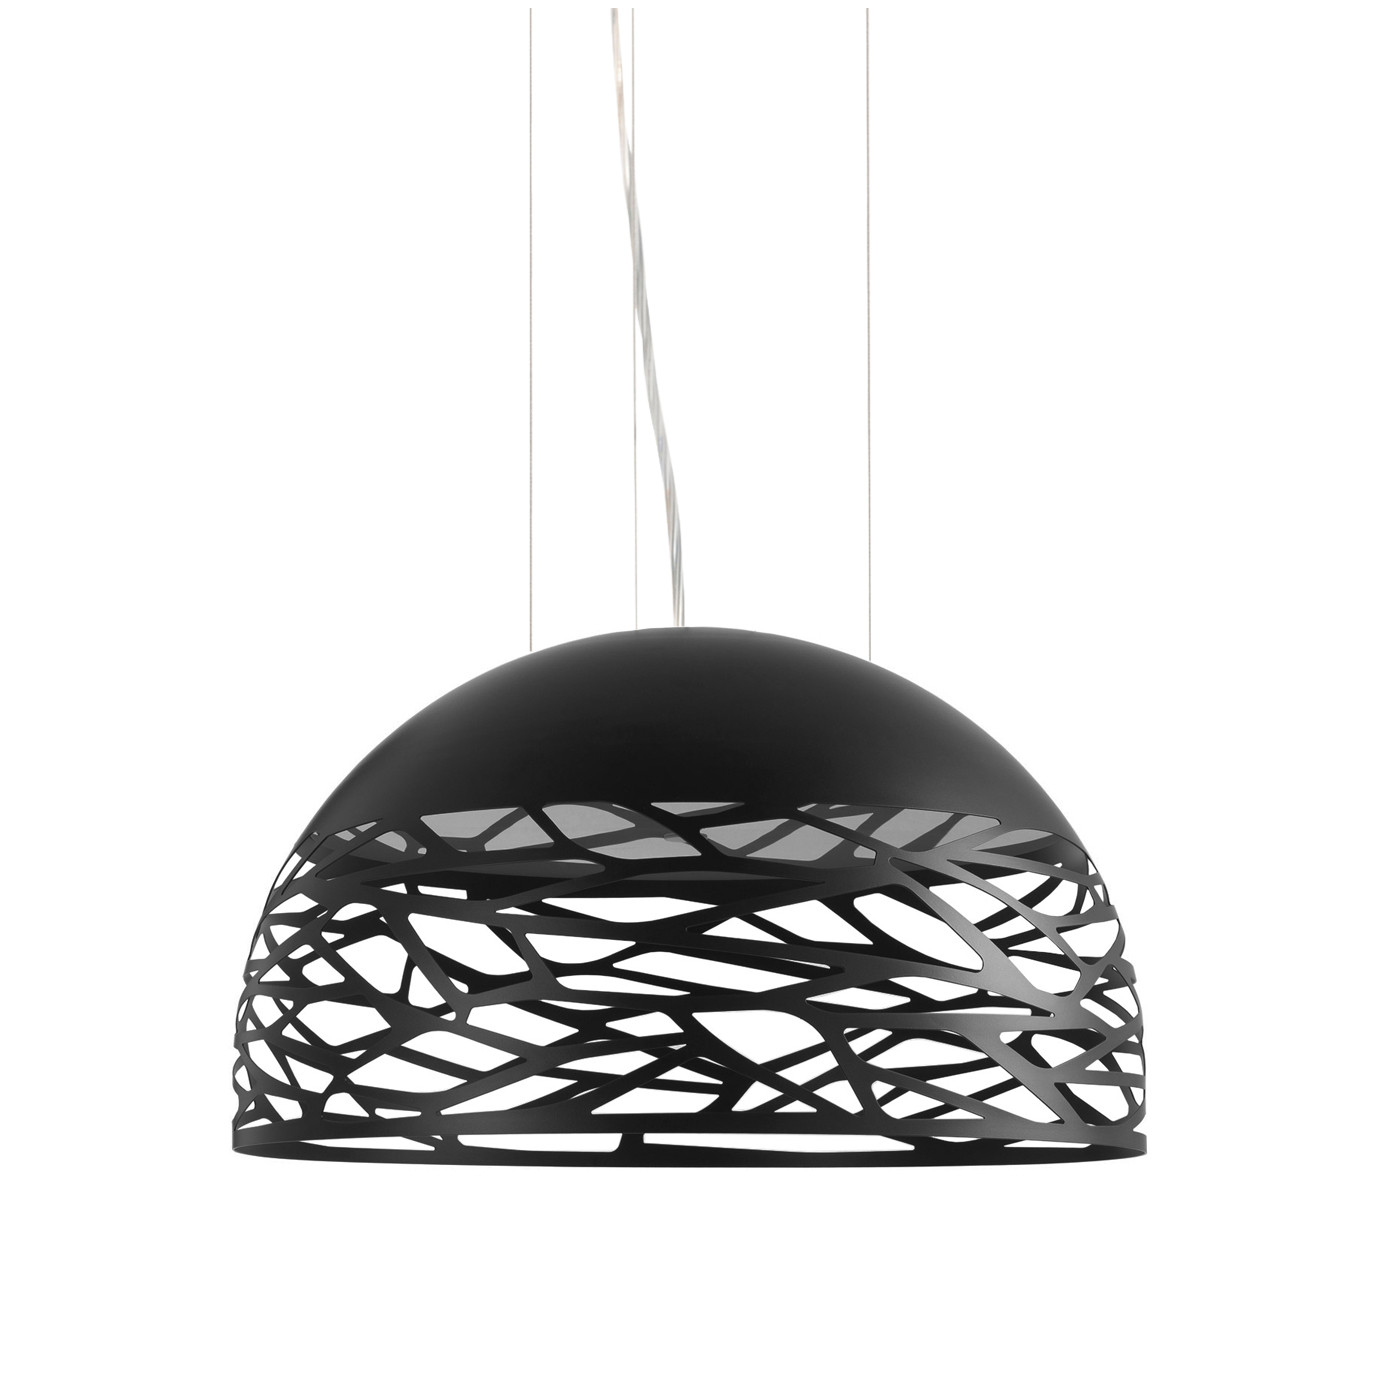 Studio Italia Design Kelly Medium Dome 60